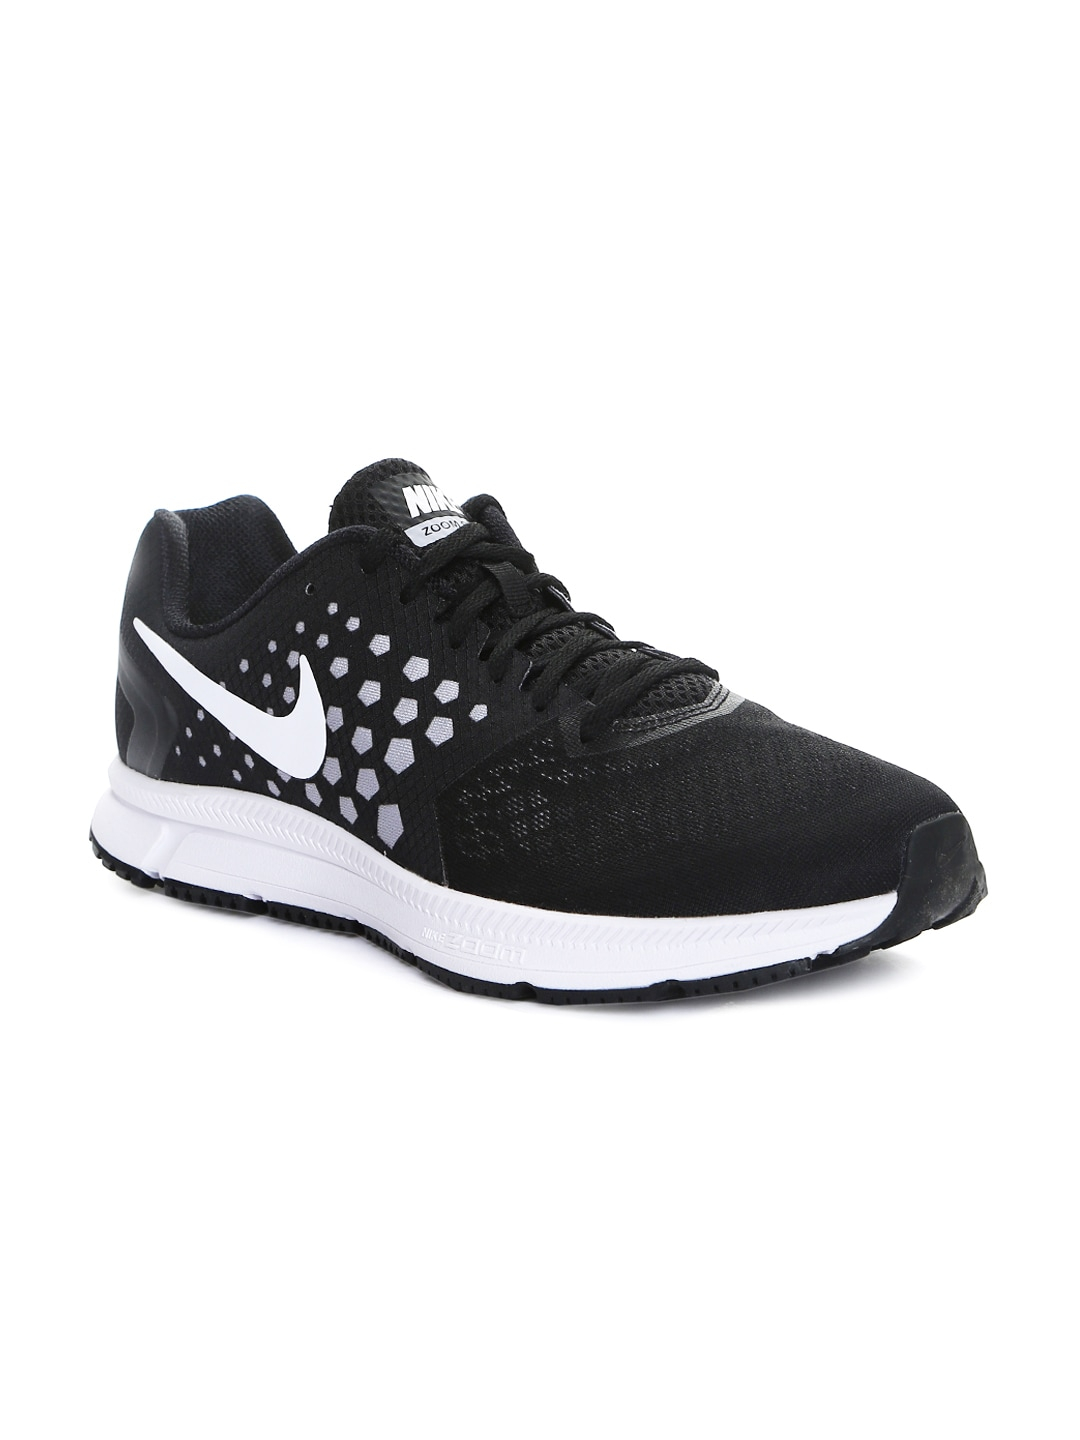 6ad700ea8d1d Nike 852437-002 Men Grey And Black Printed Zoom Span Running Shoes - Best  Price in India